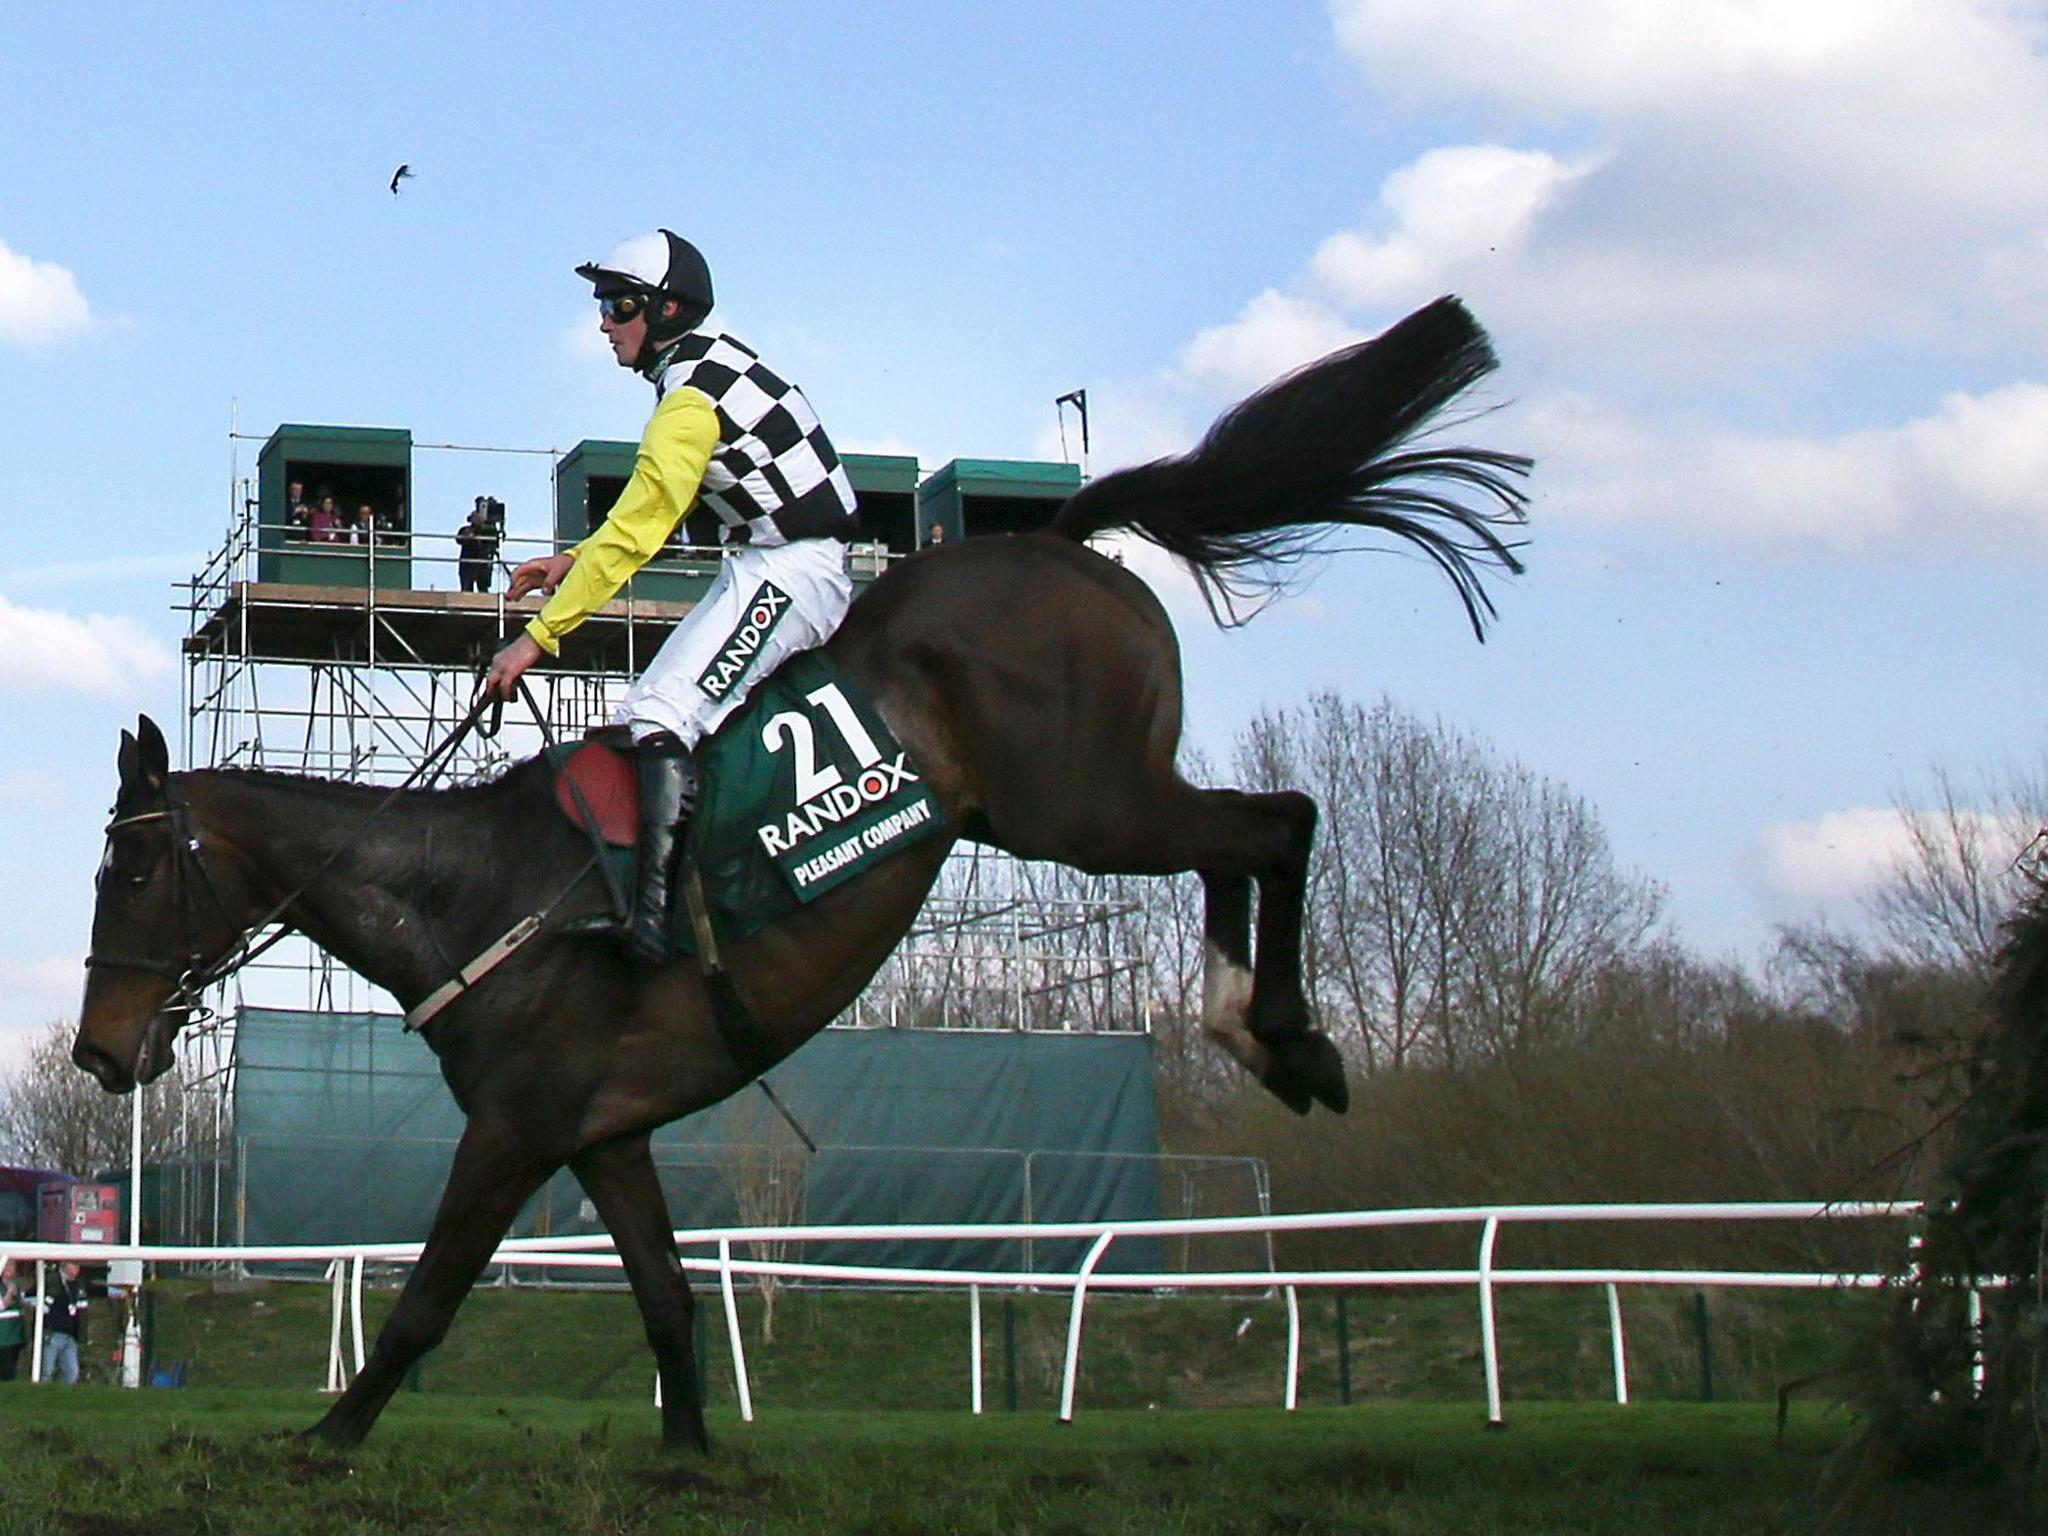 Grand National 2018: One horse killed over three-day Aintree